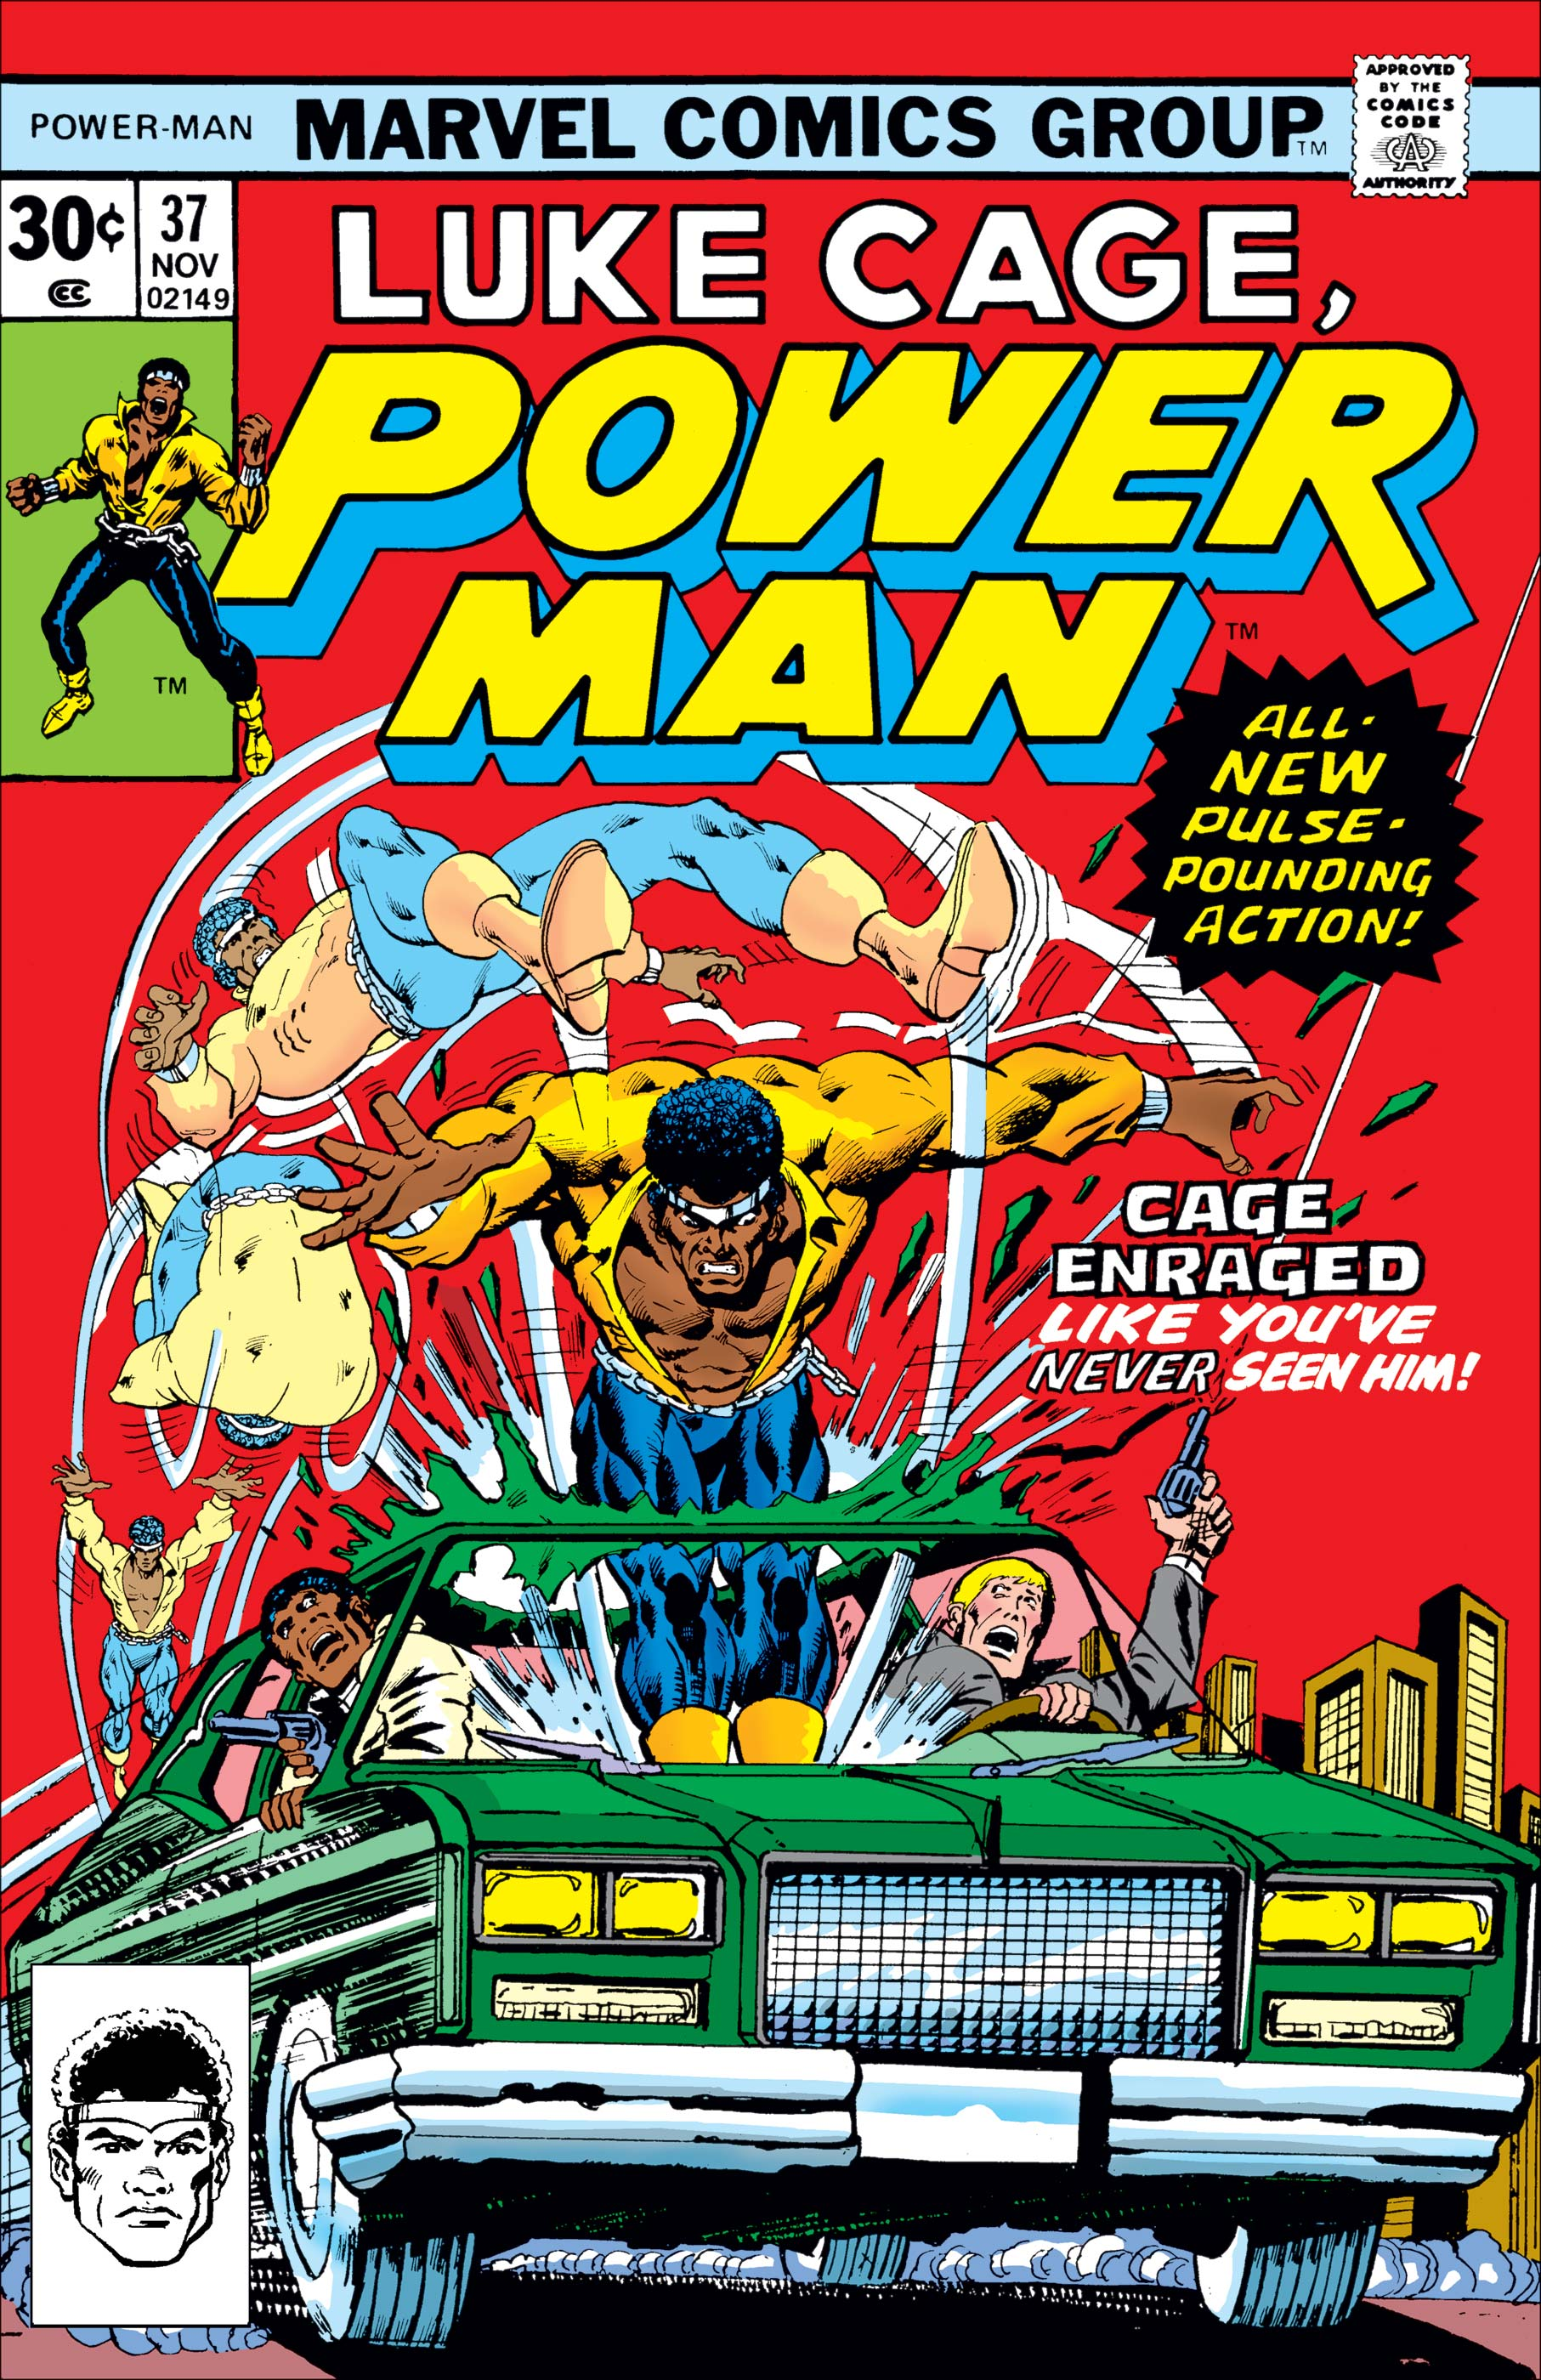 Power Man (1974) #37